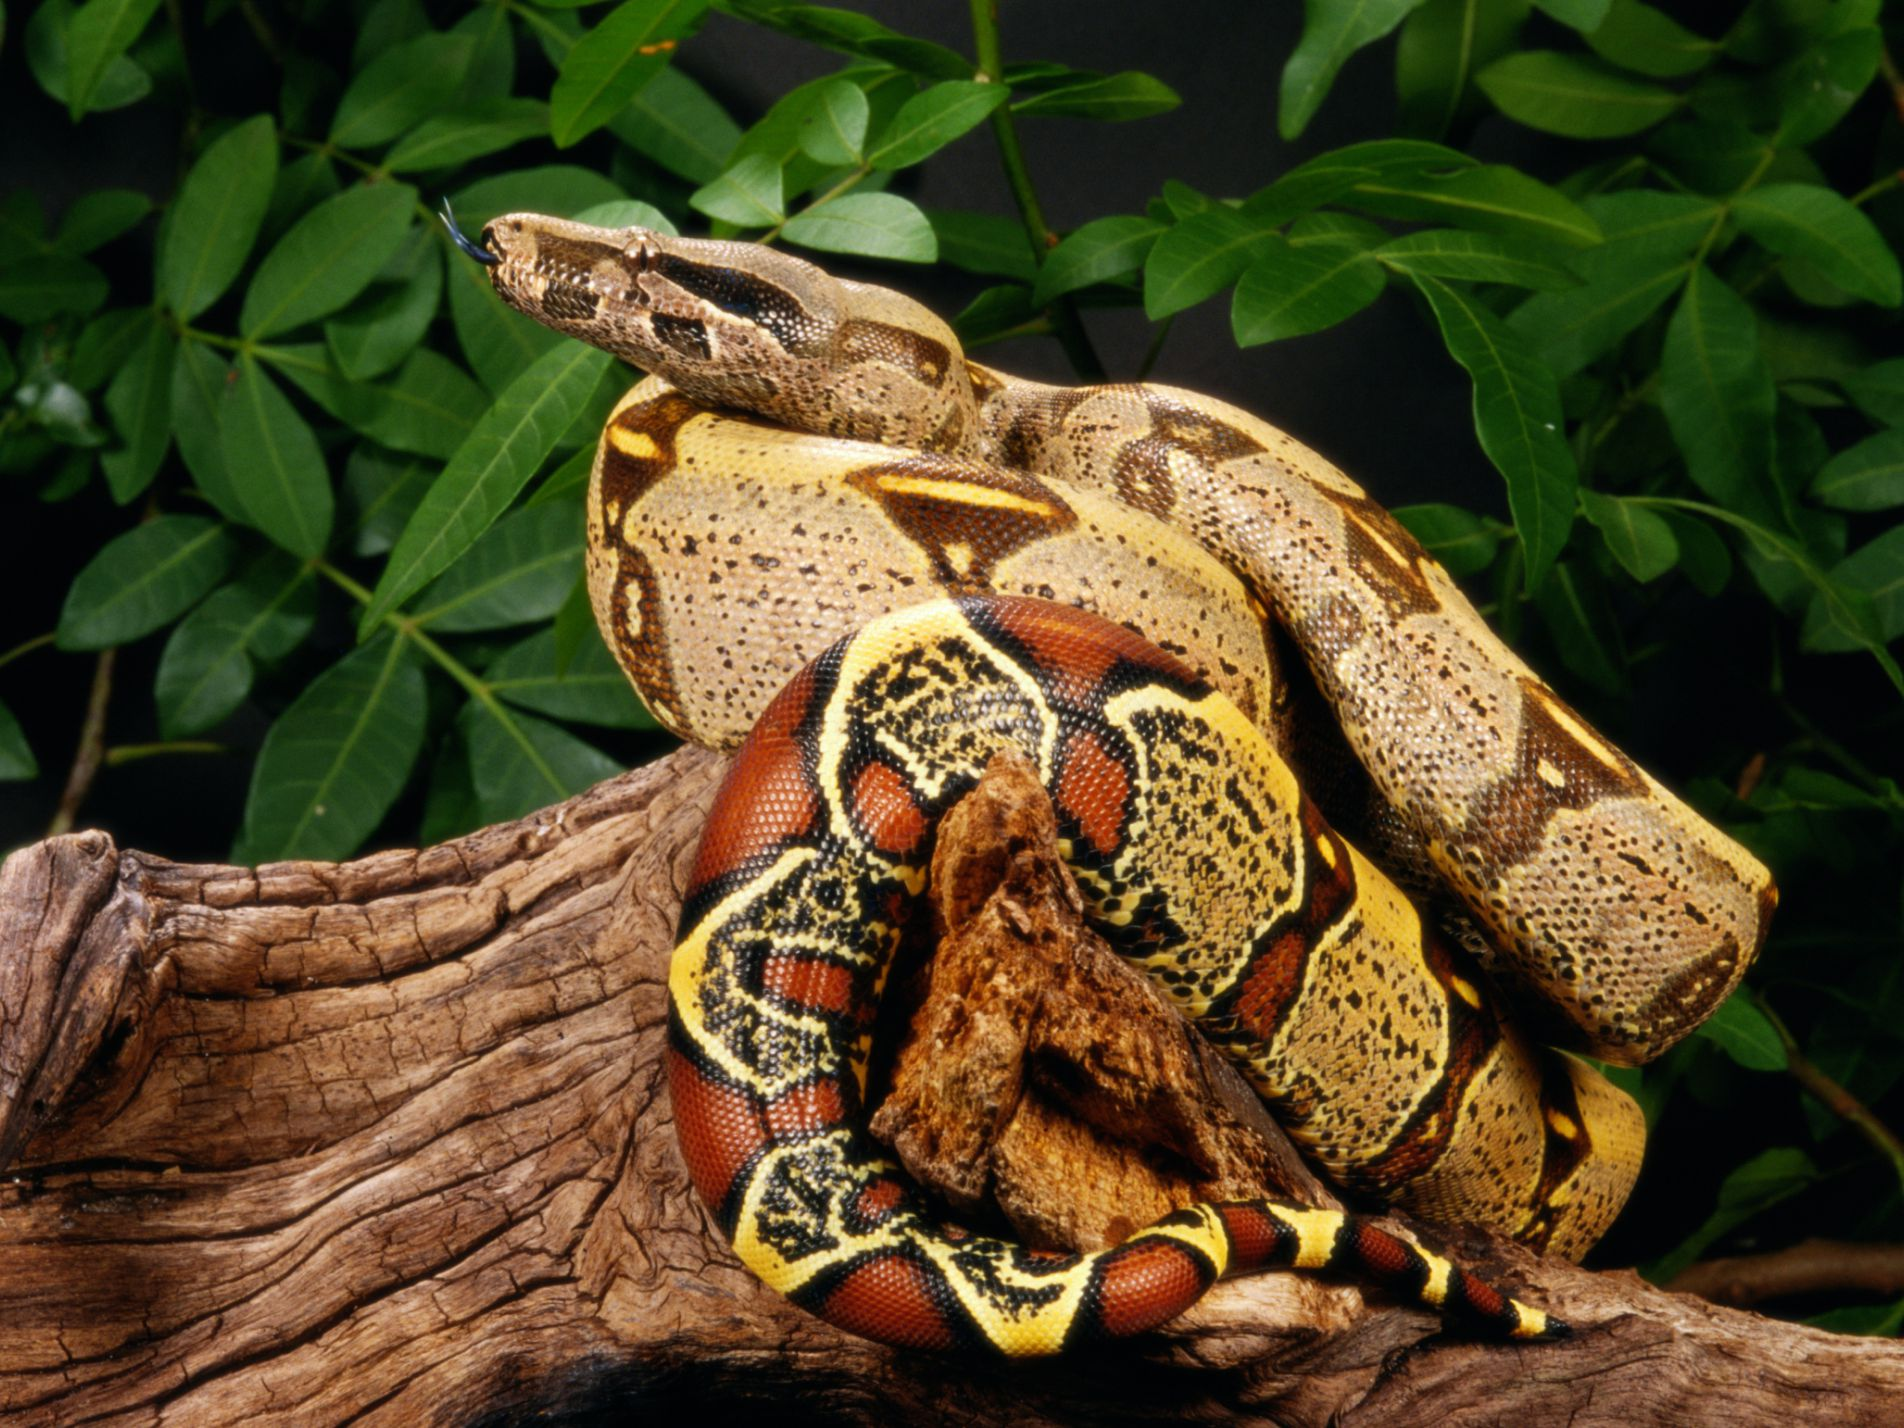 How To Care For A Pet Red Tail Boa